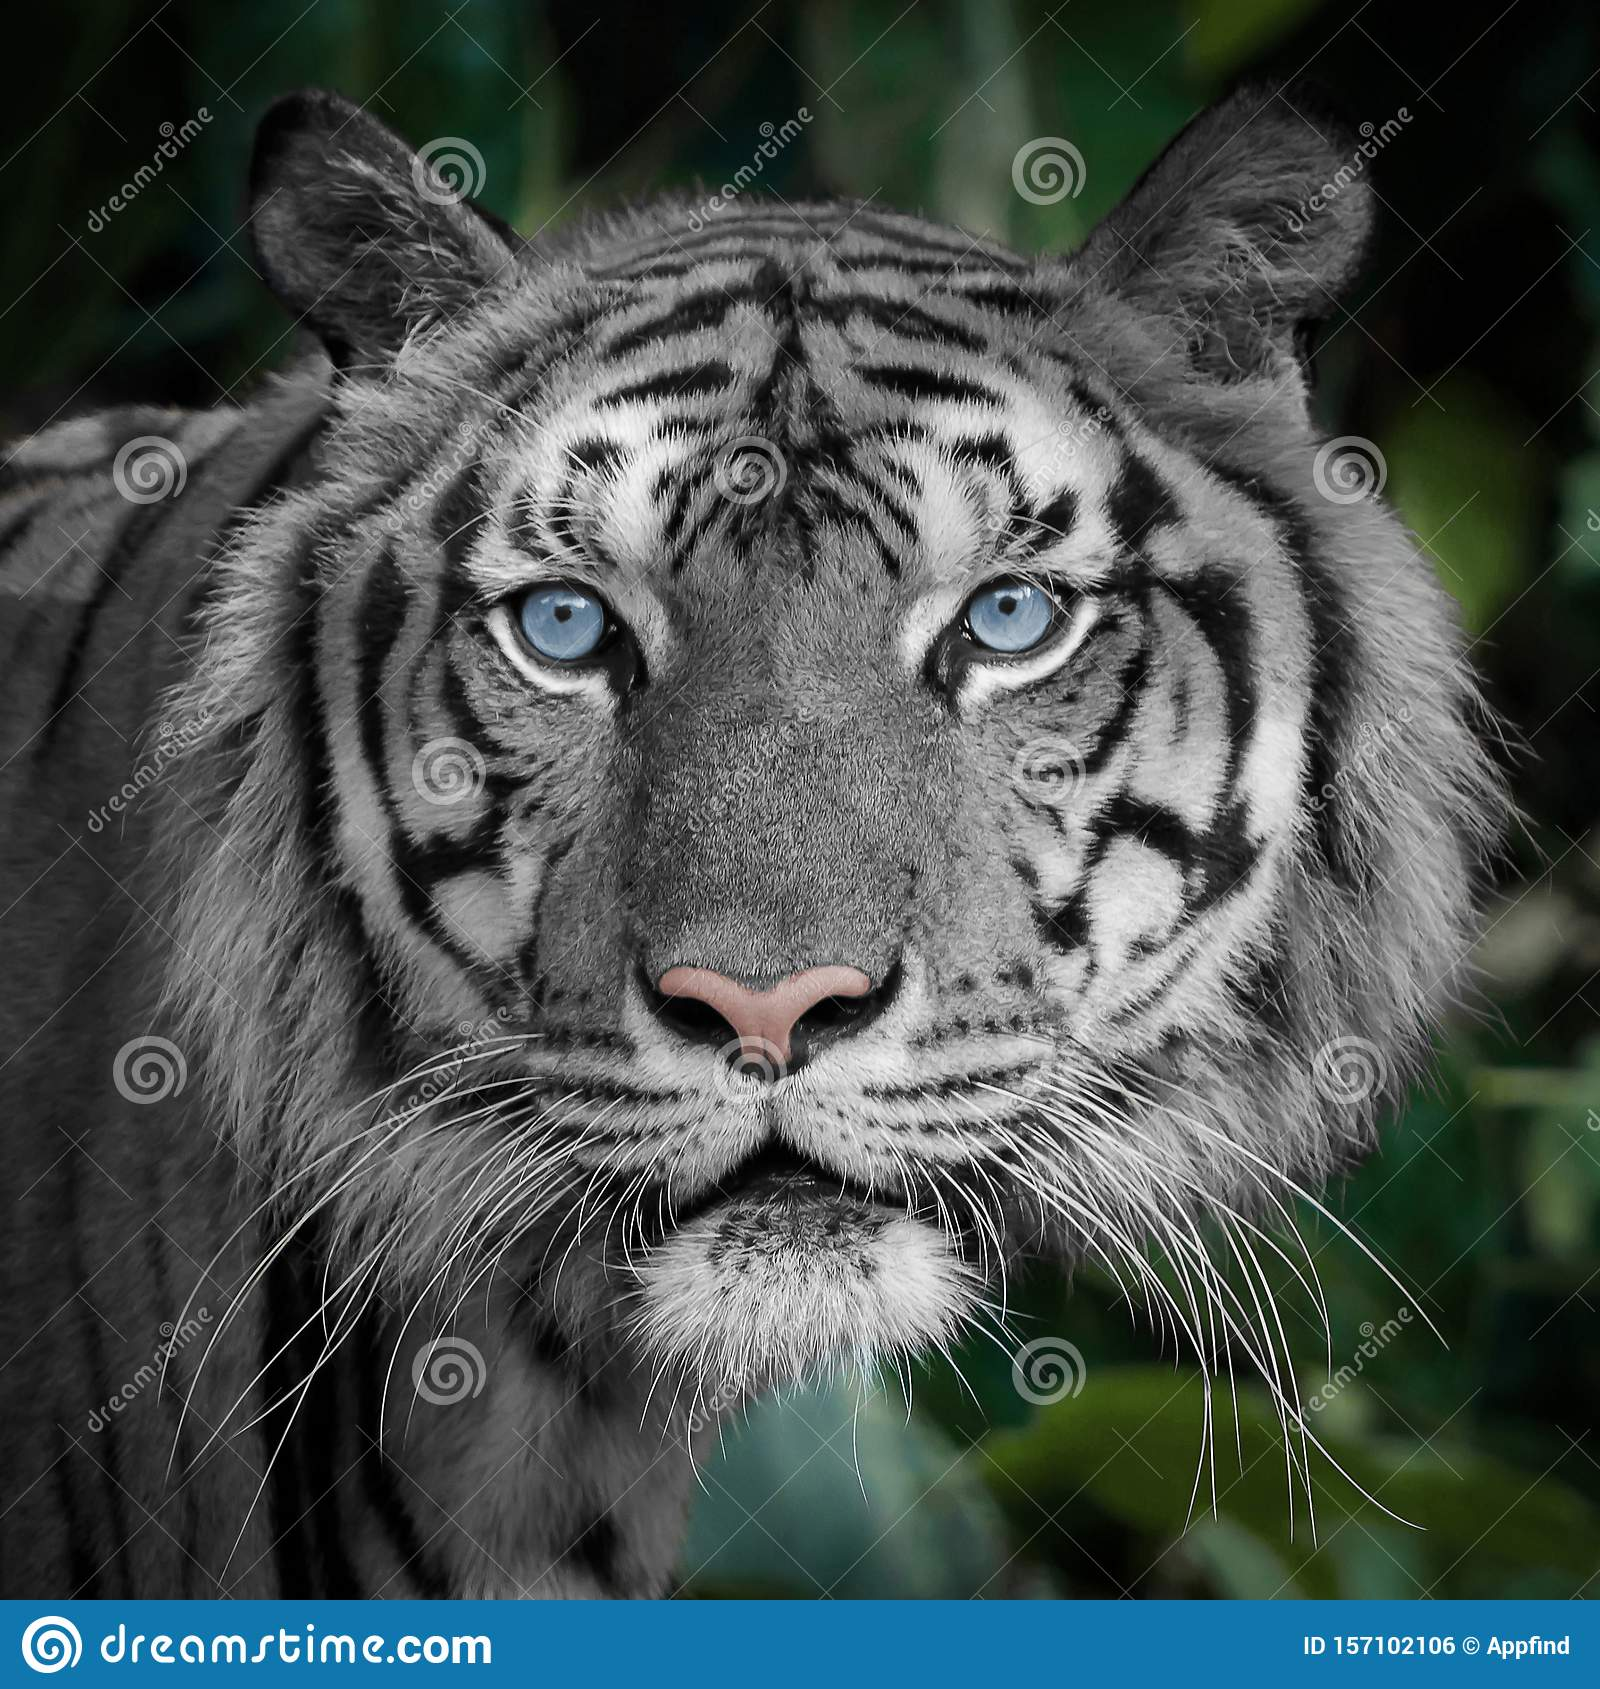 photos tiger naturally white blue eyes forest background 157102106